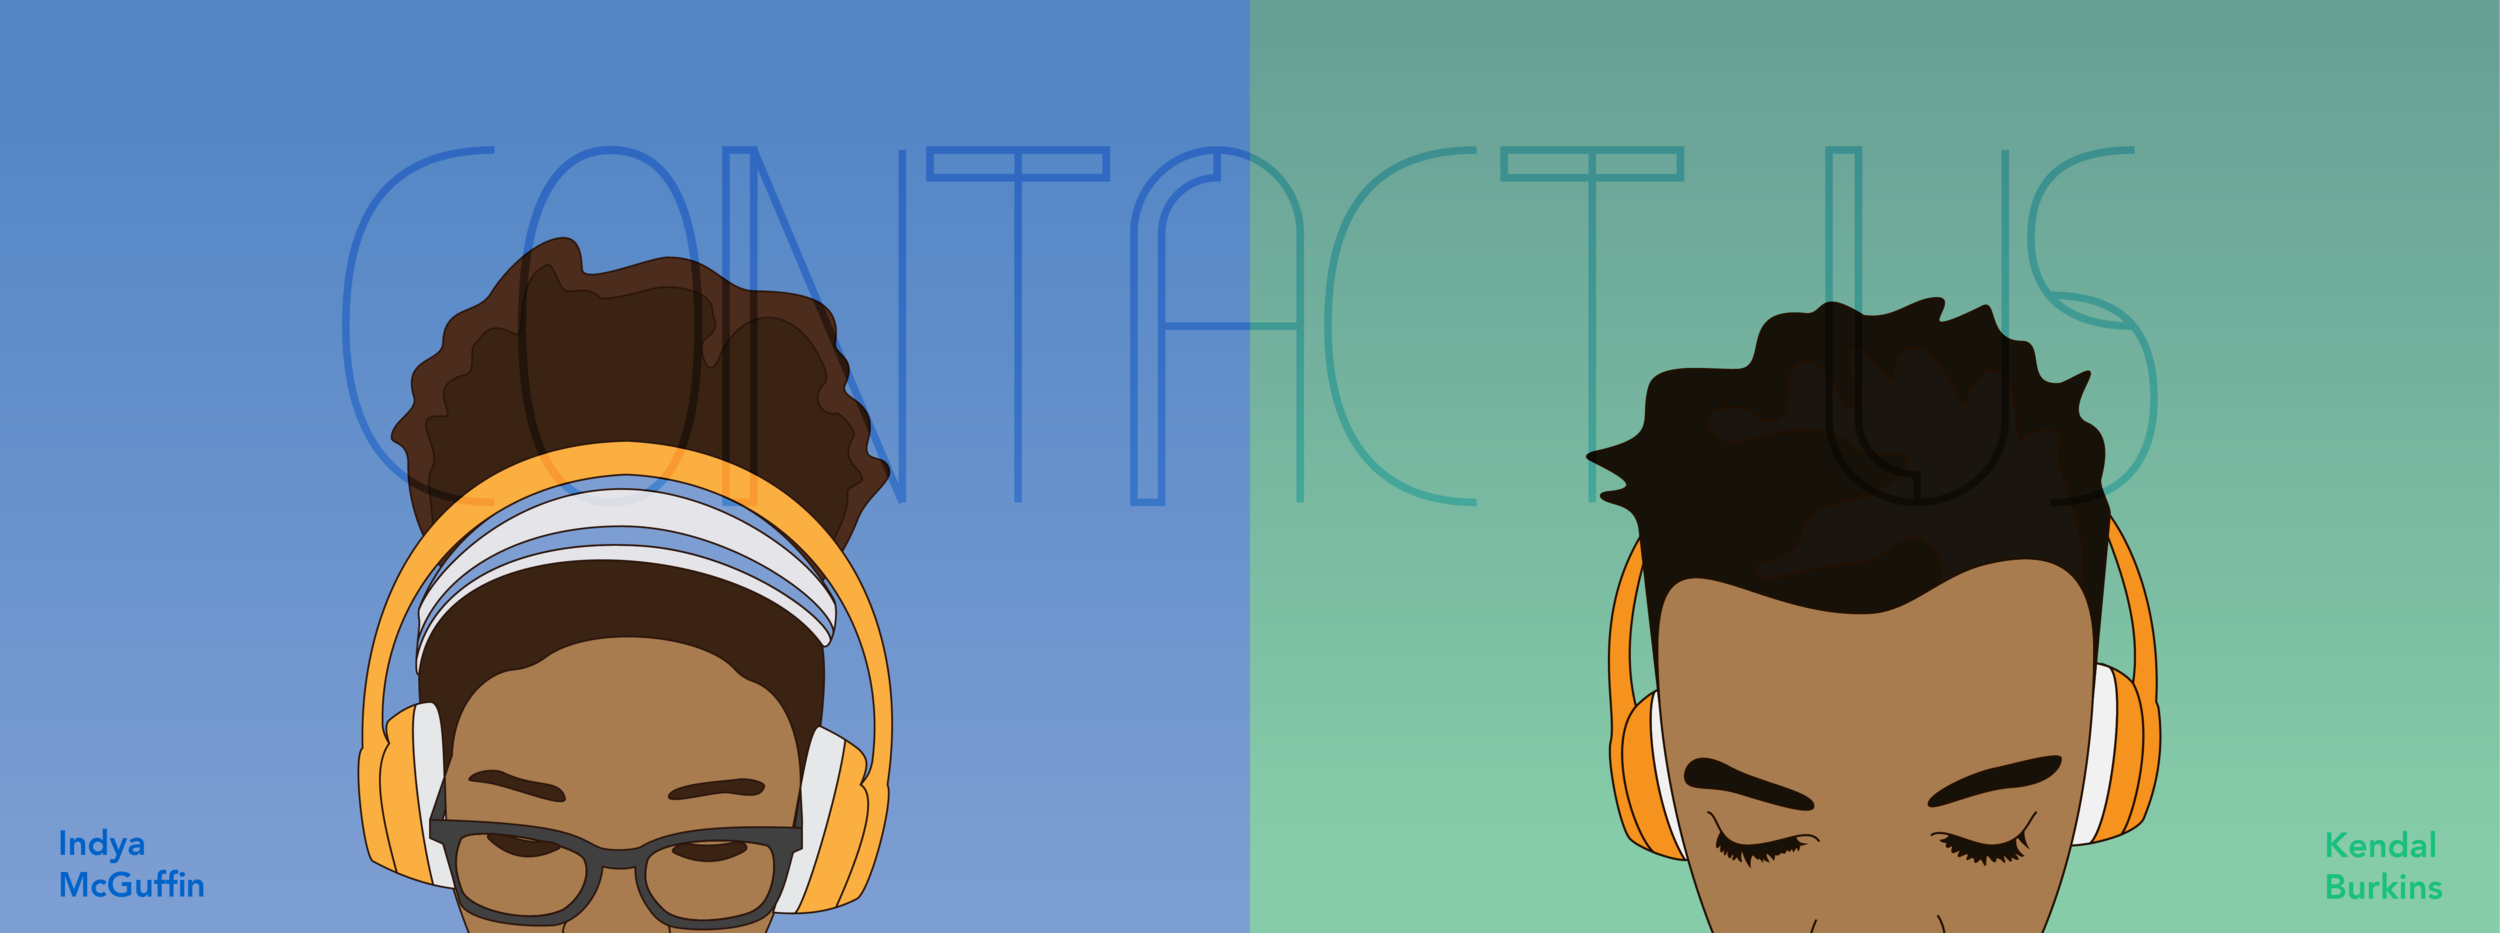 Contact - Heads-01.png